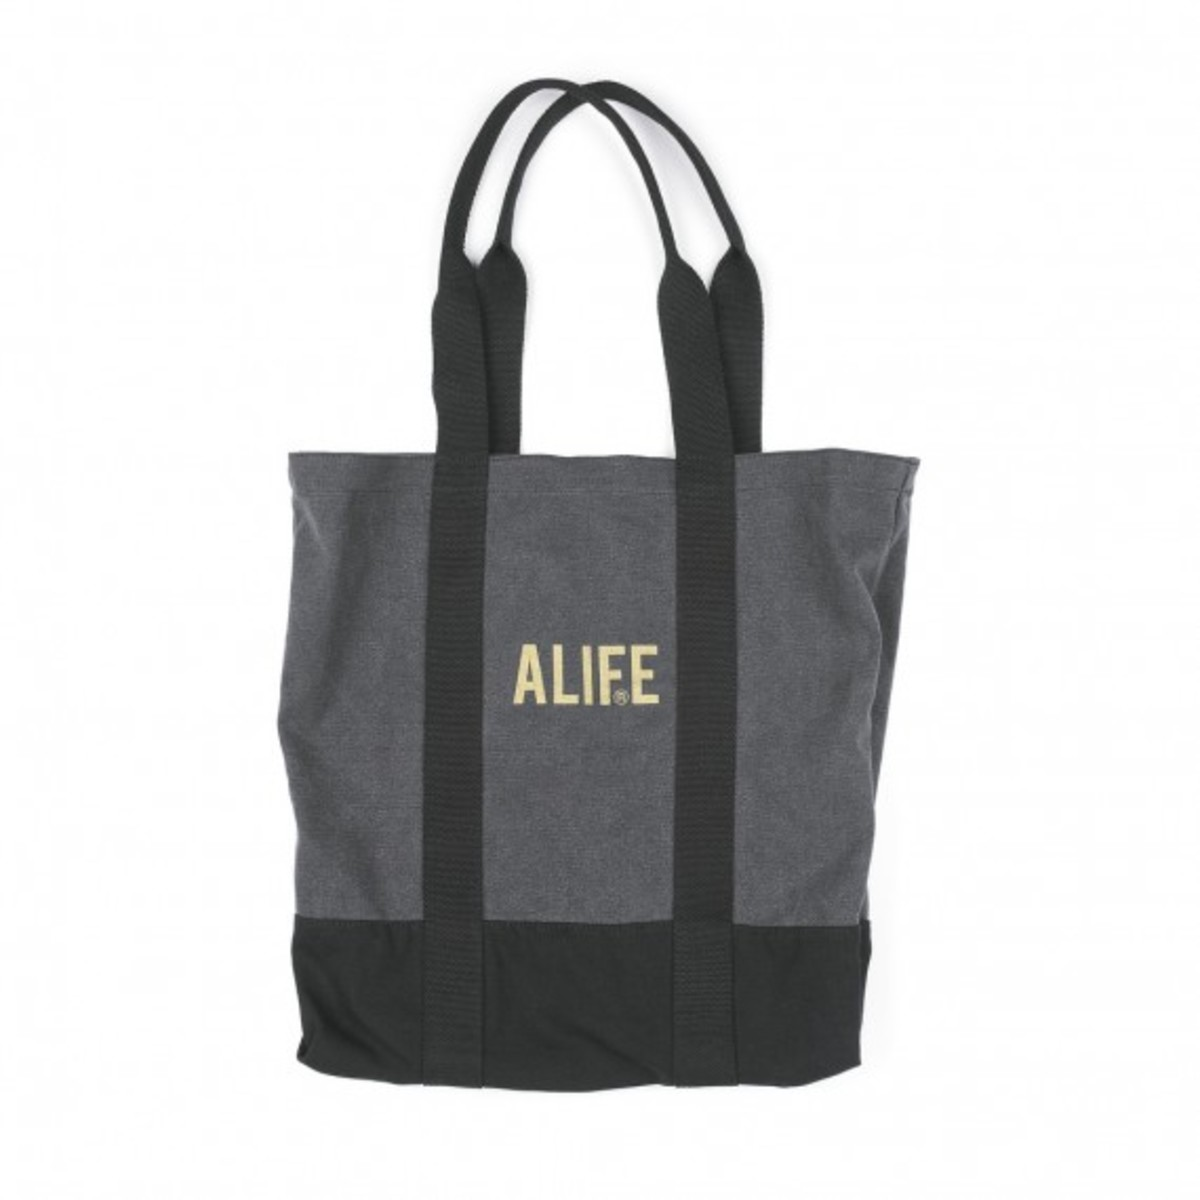 alife-tshirts-accessories-fall-2011-47